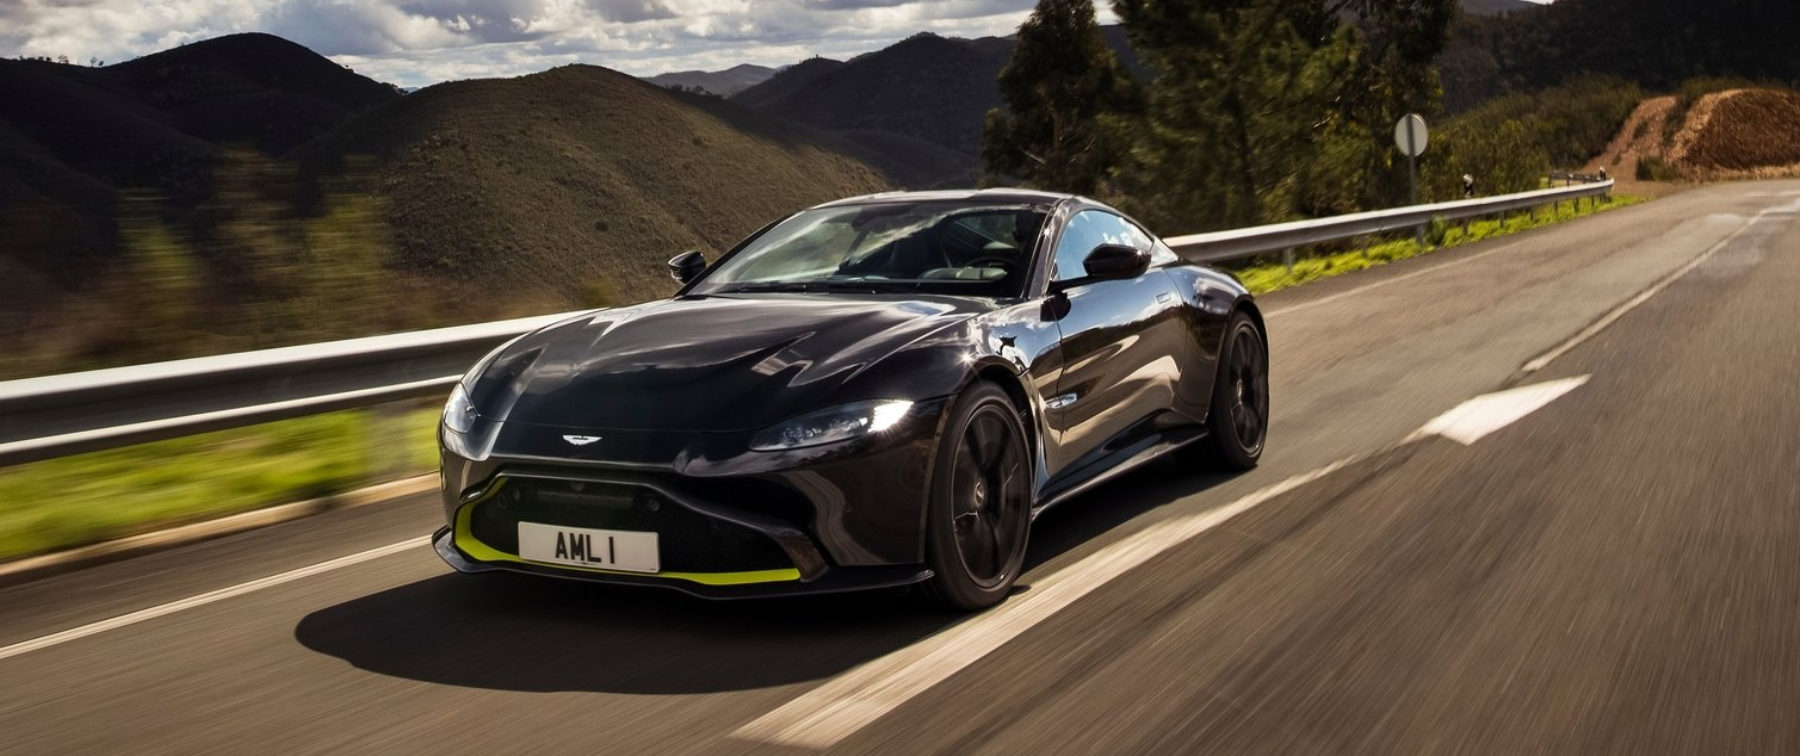 Aston Martin S New Vantage Is A Masterclass In Sporting Design